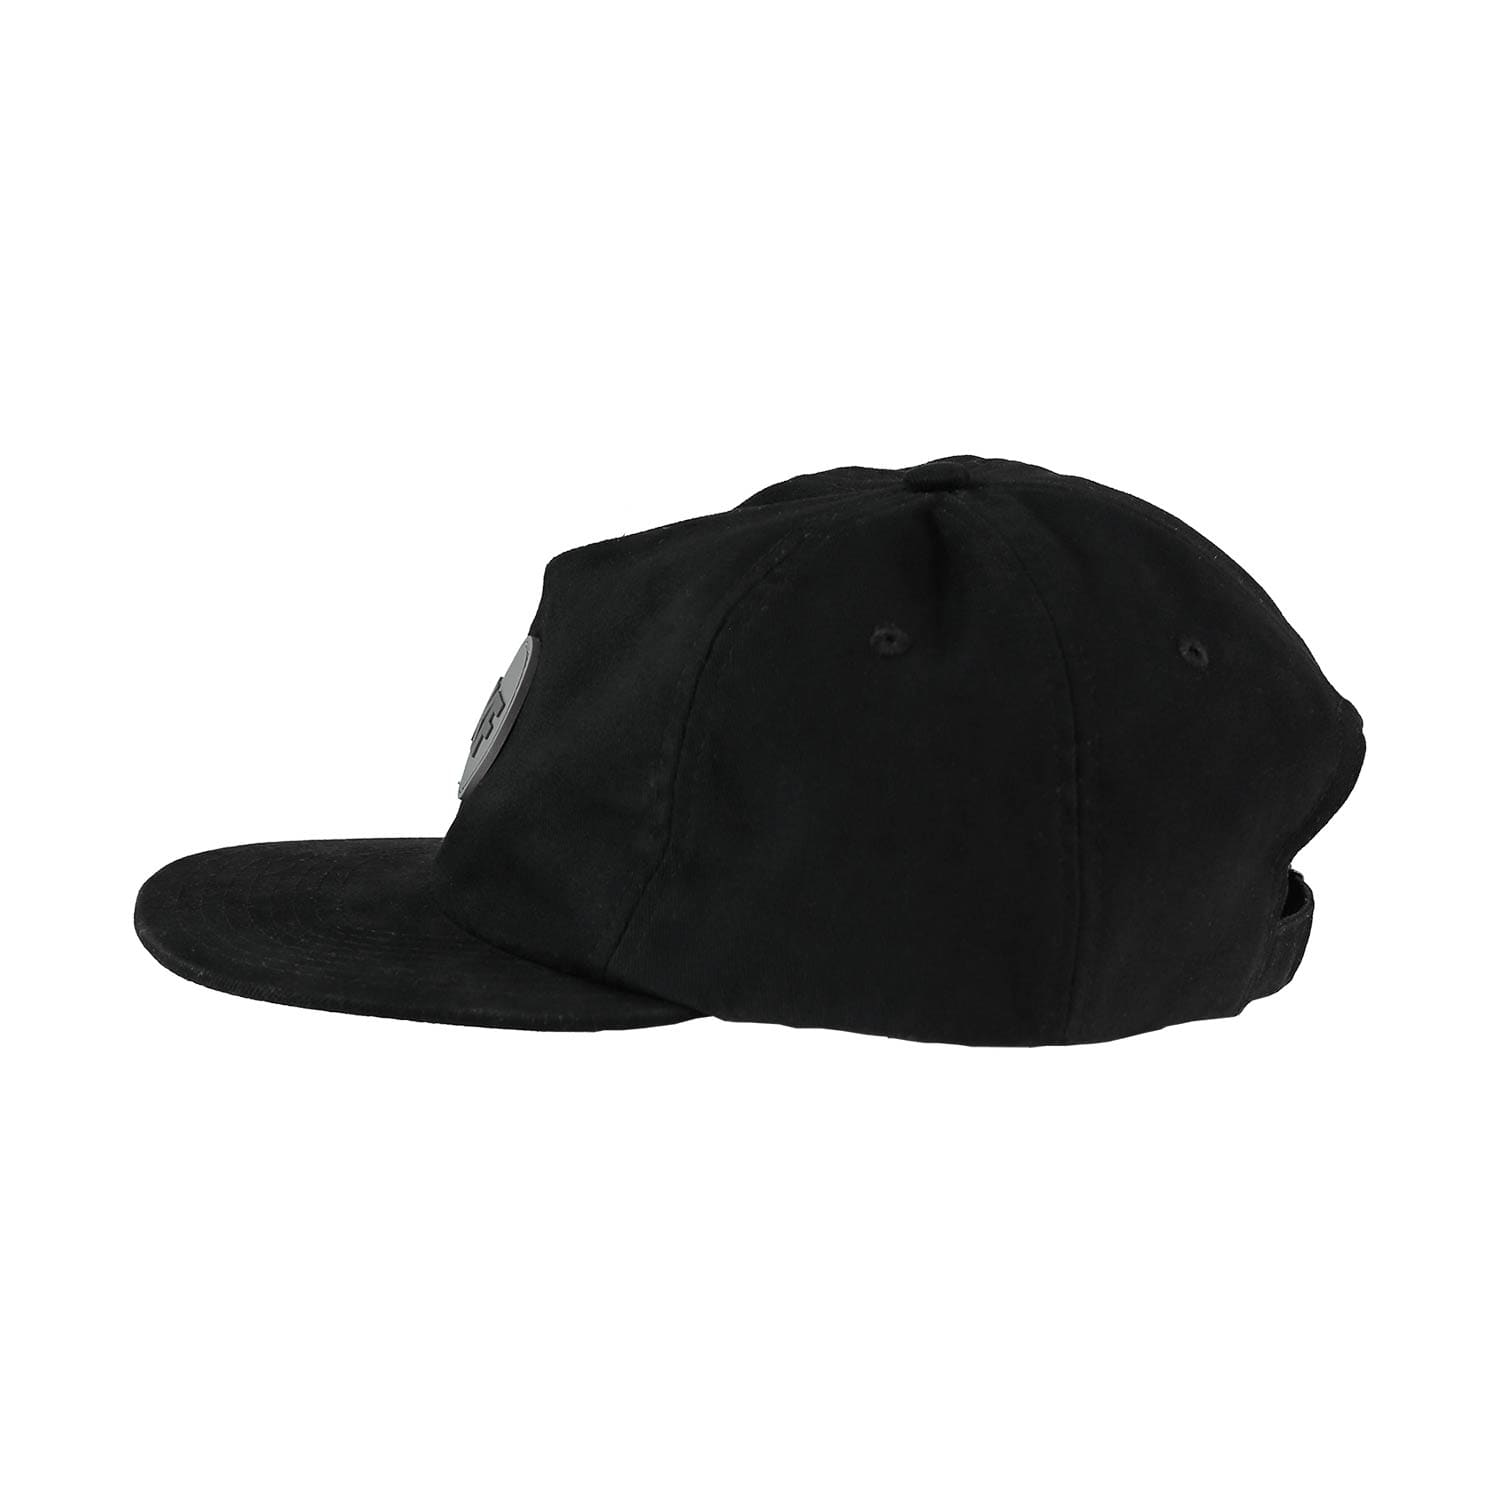 UKF Snapback in black side view